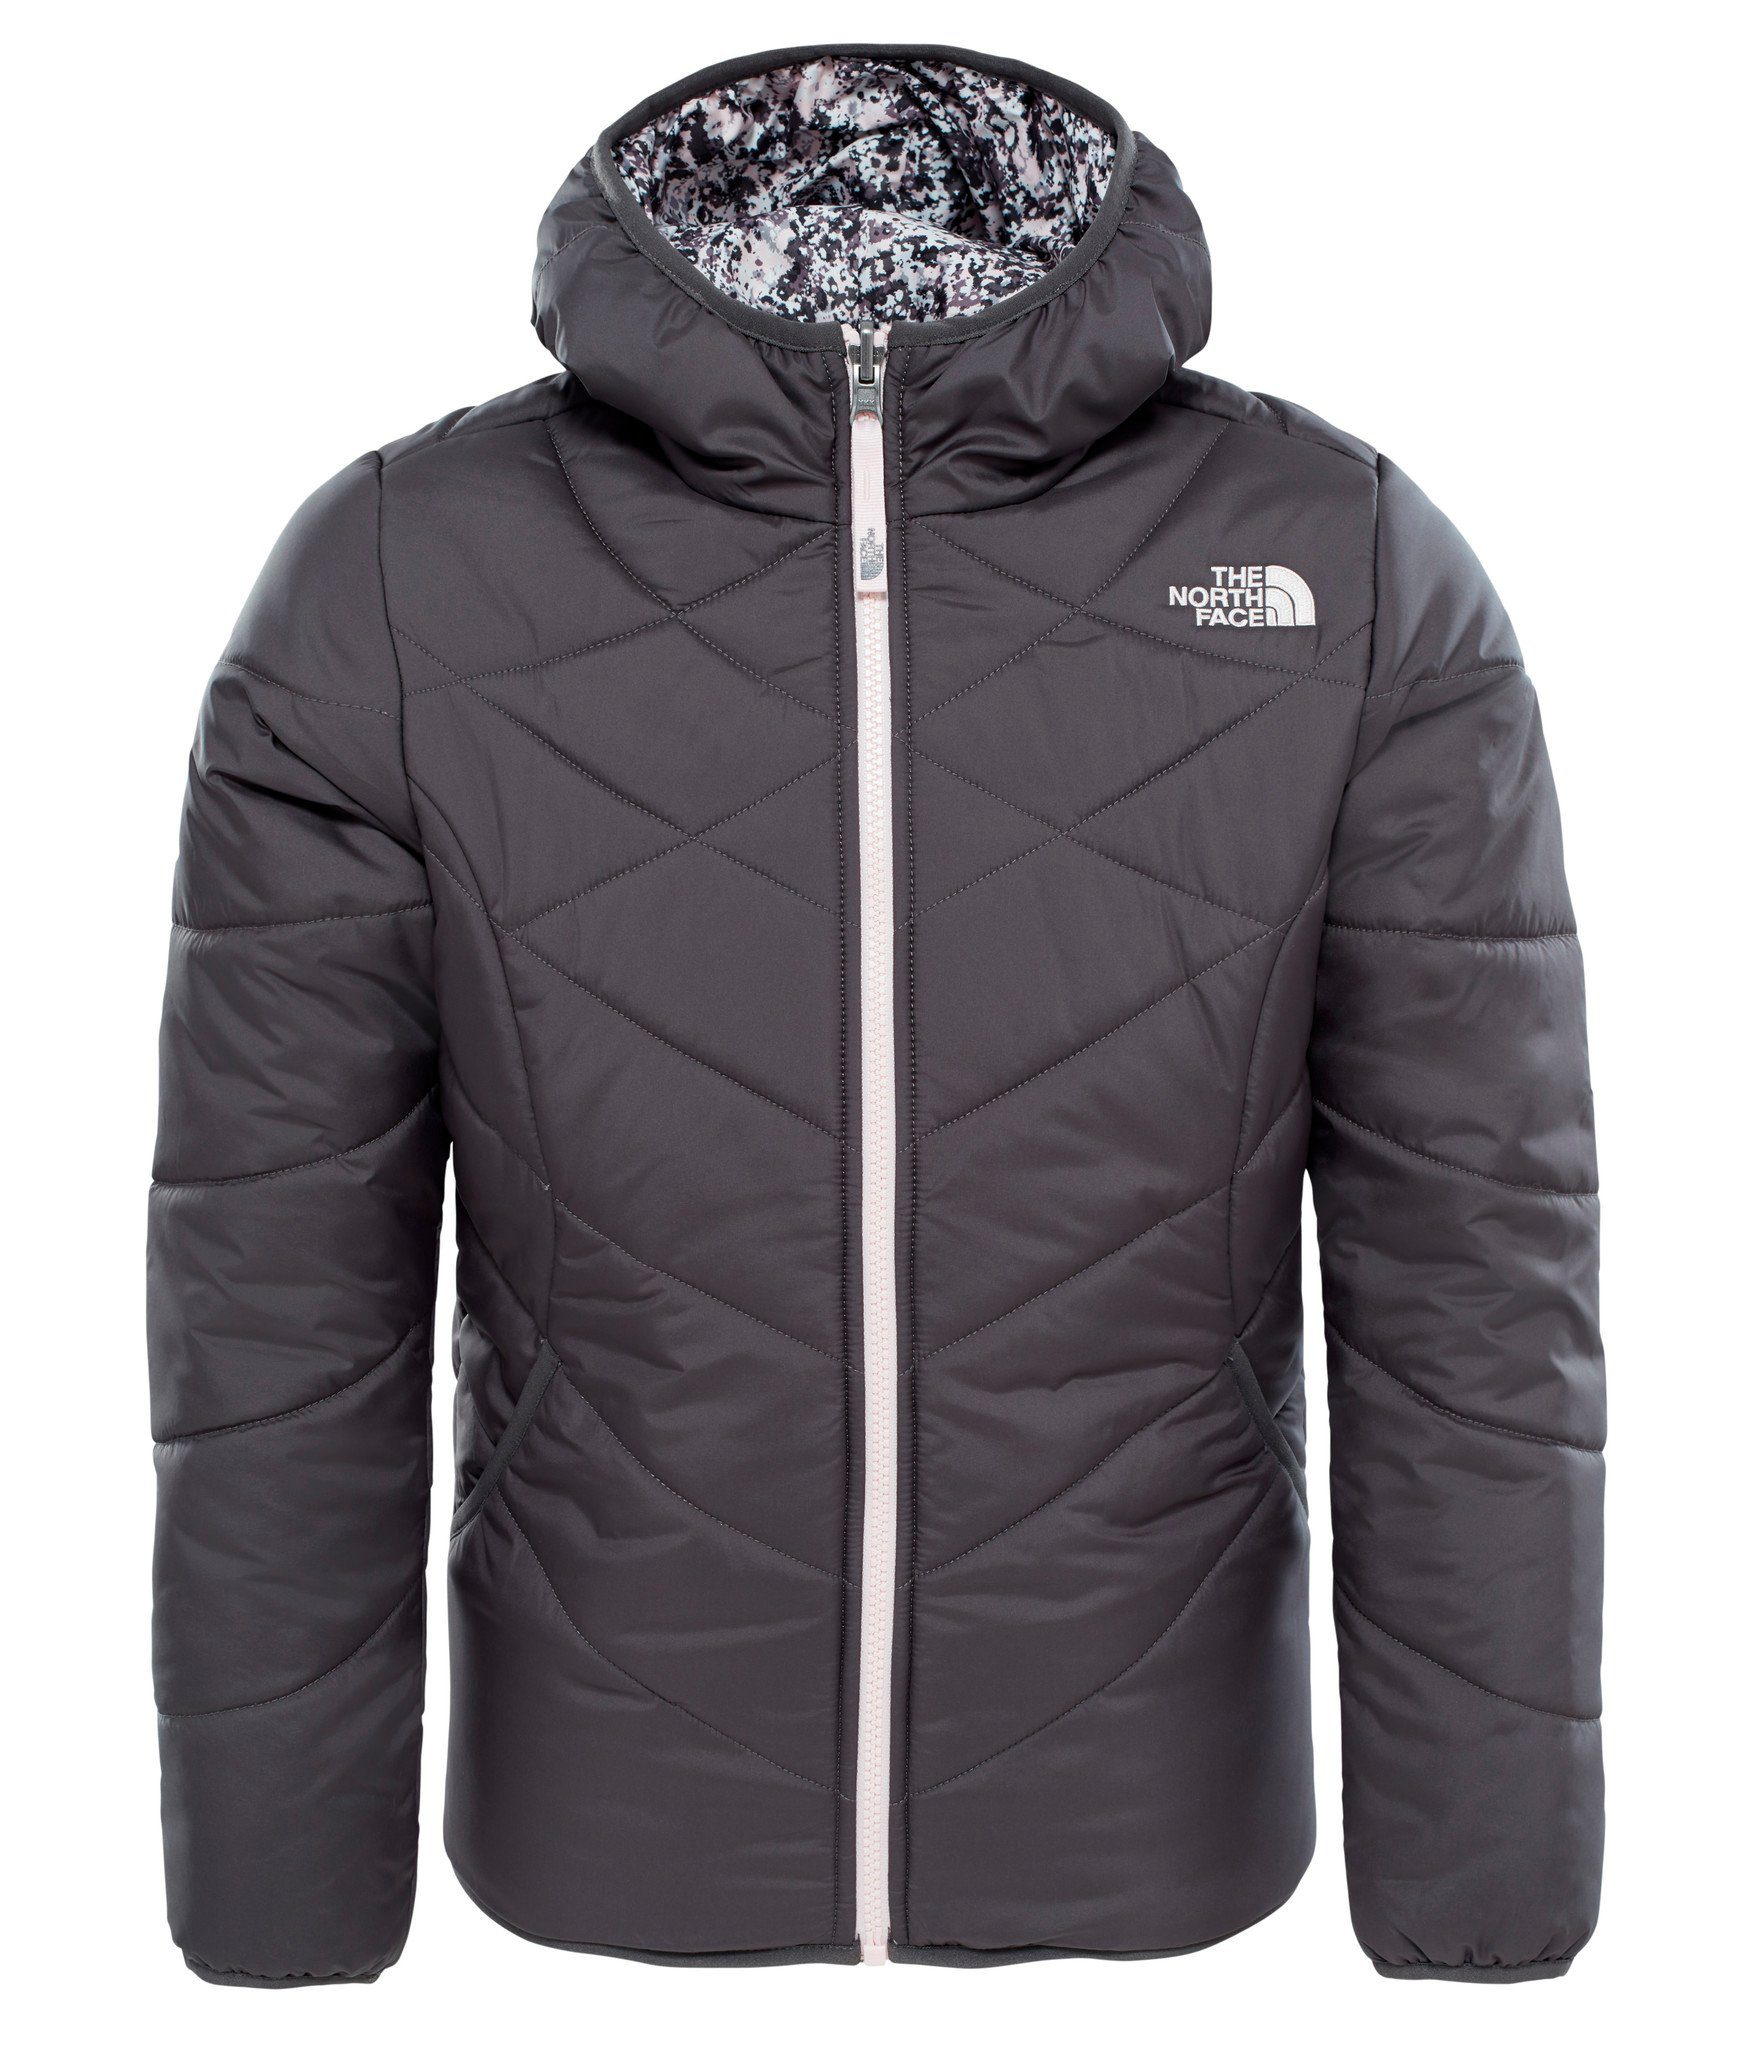 The North Face Outdoorjacke »Perrito Jacket Girls«